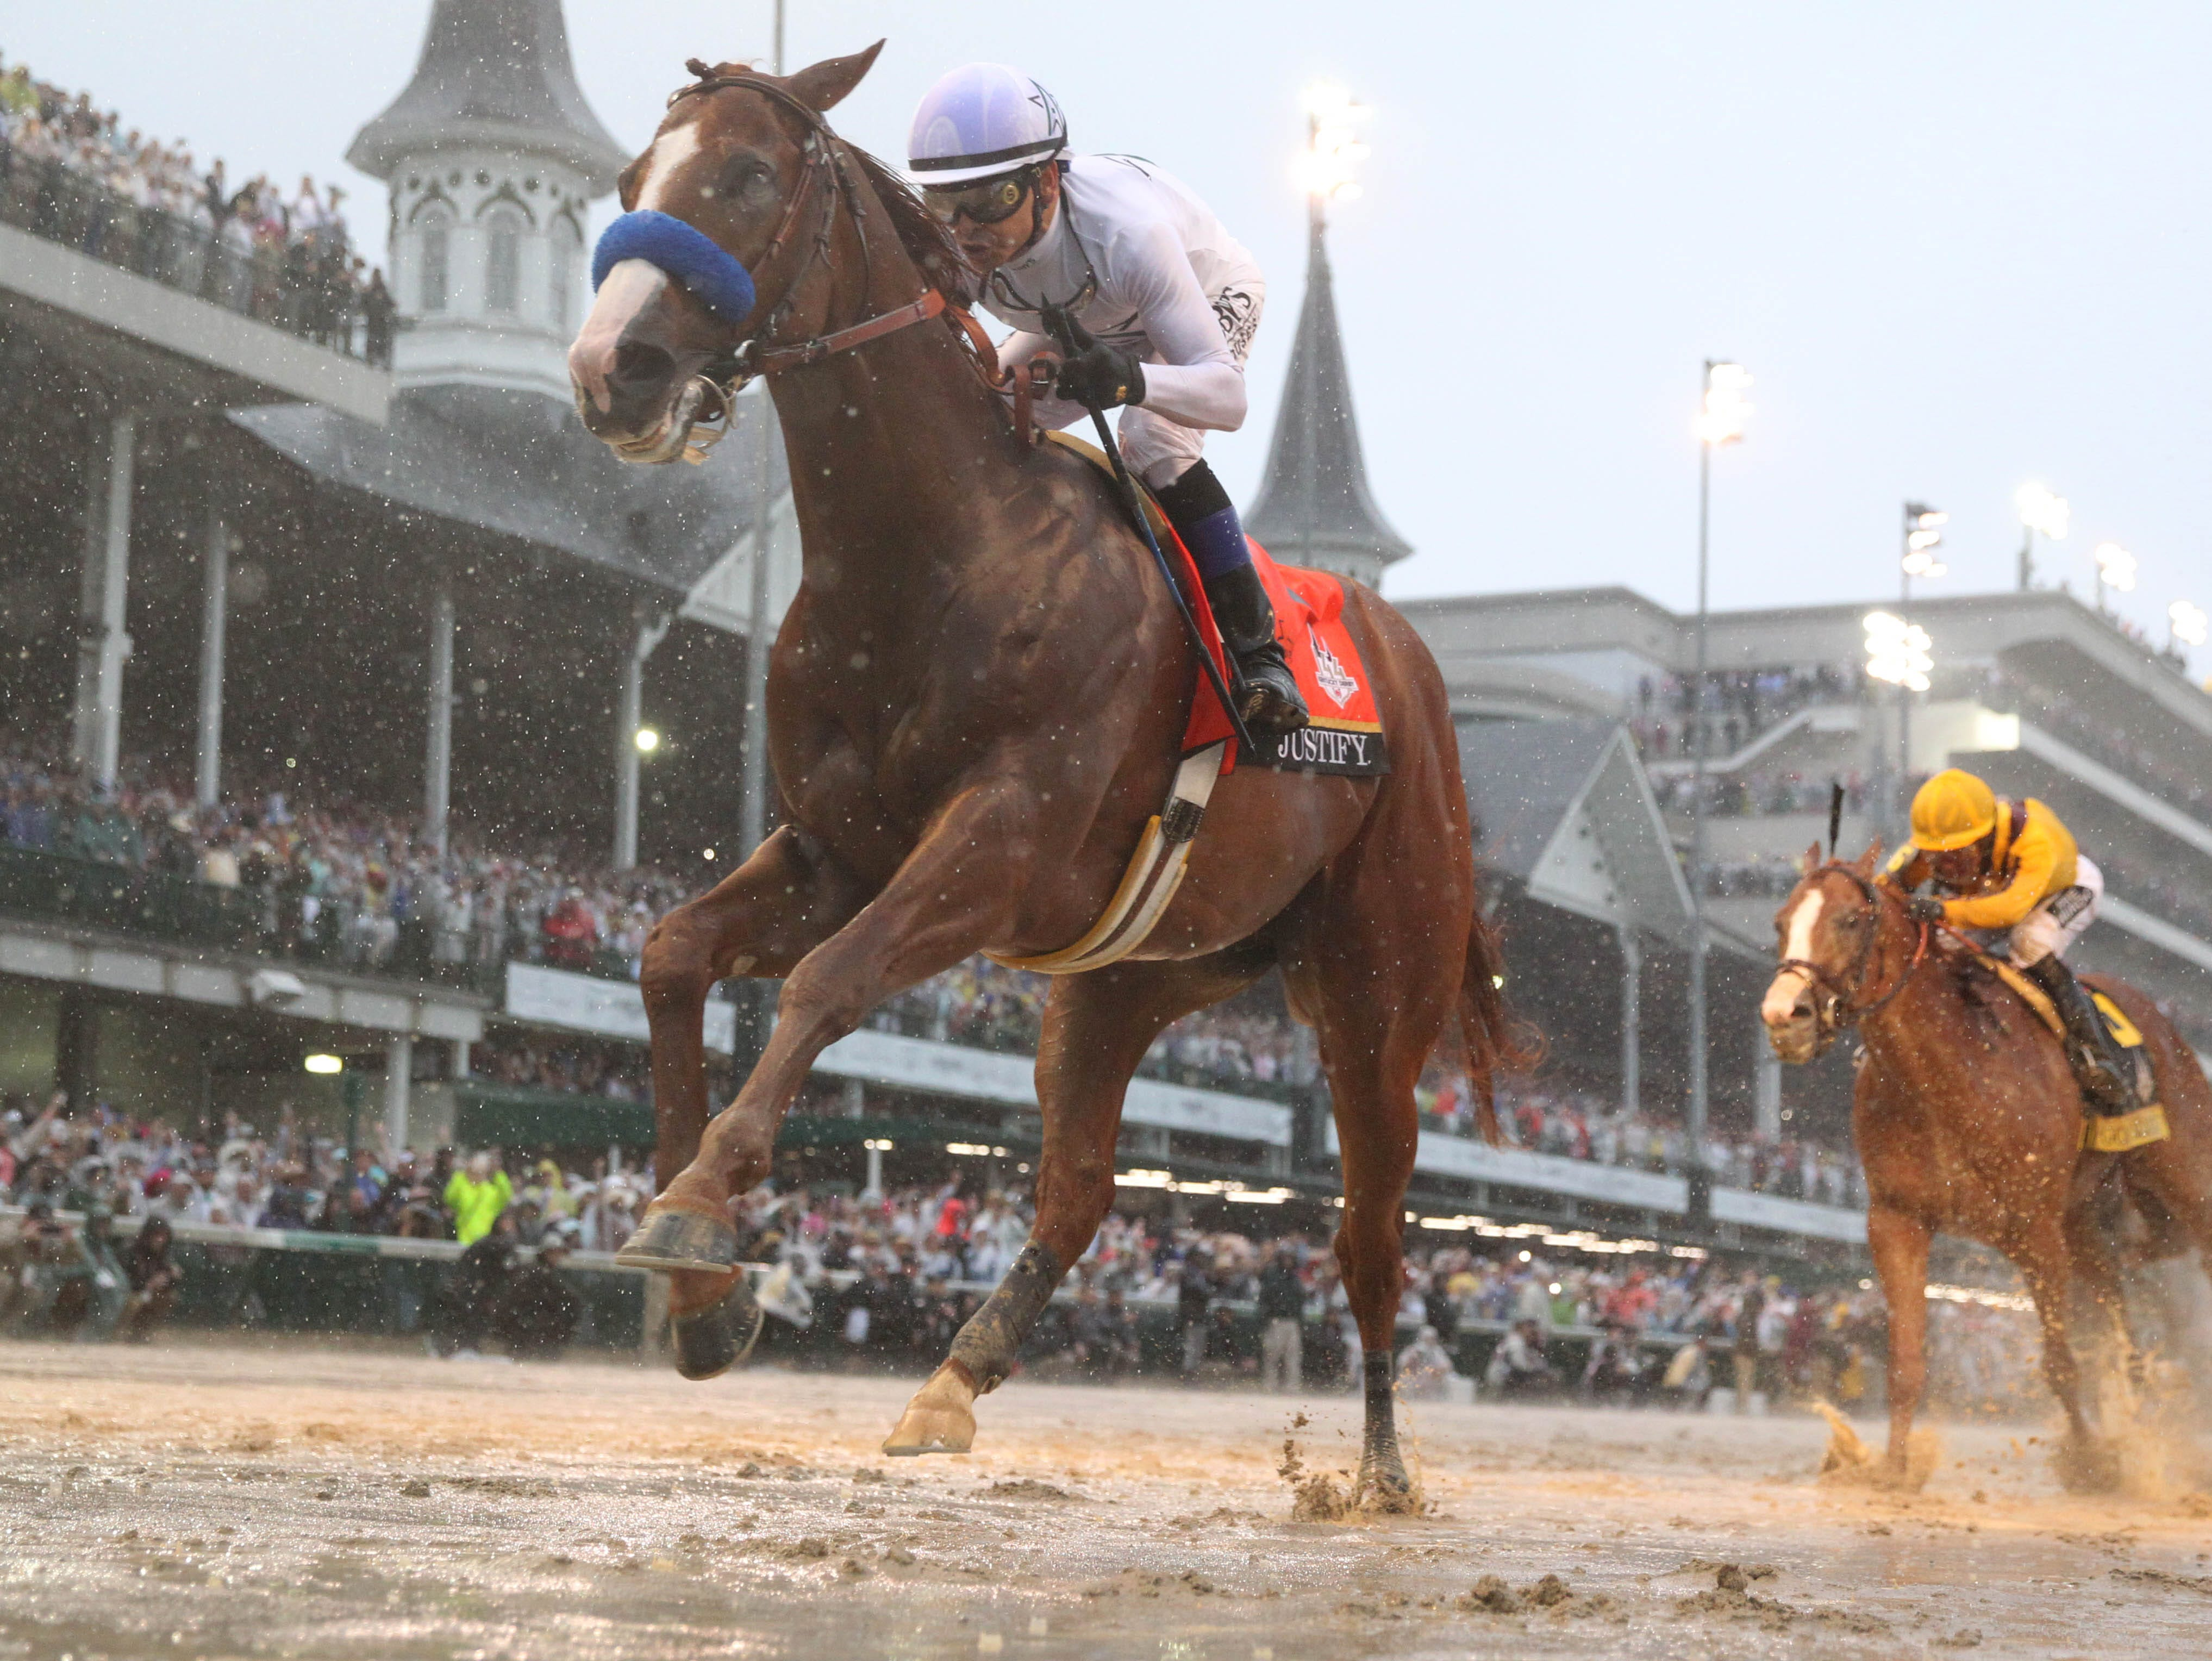 May 5, 2018: Mike Smith aboard Justify (7) crosses the finish line to win the 144th running of the Kentucky Derby at Churchill Downs.